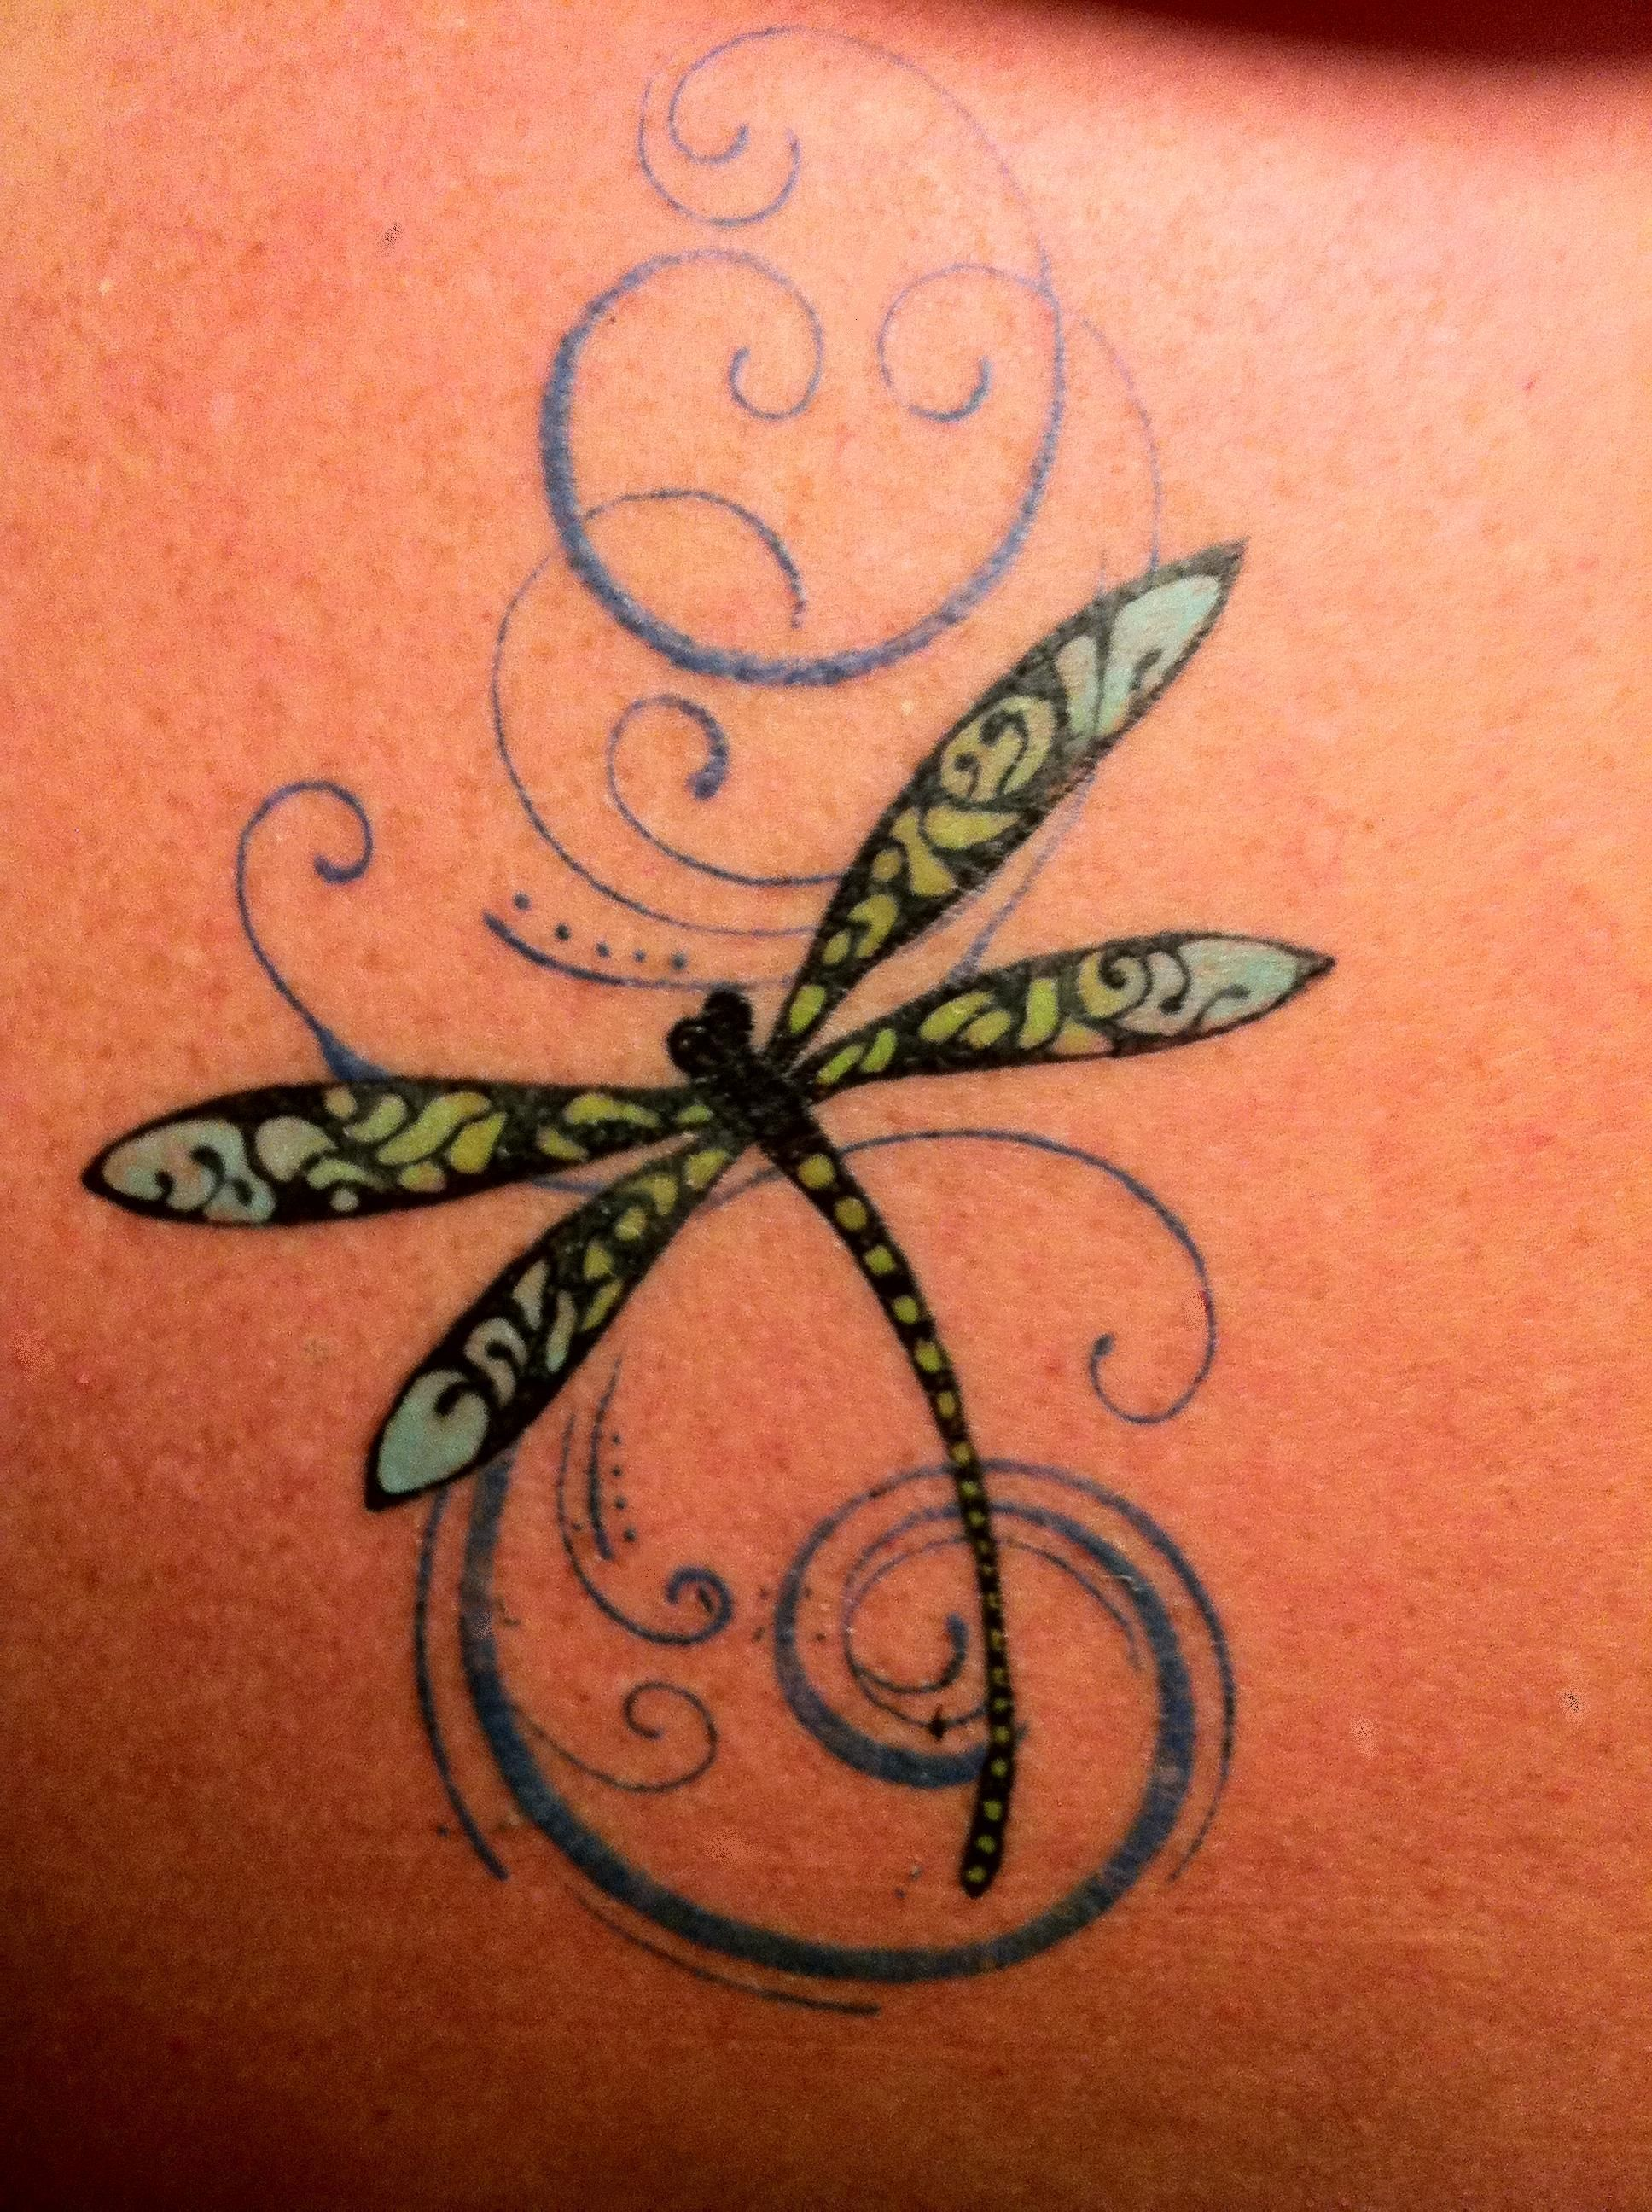 future tattoo for my mom... A dragonfly accepts it's brevity of life, with its gossamer wings feeling the breeze. Full of freedom, it watches our joy and our strife. Its wisdom learned flitting from water to air to trees. With wings that shimmer showing purpose and duty Obedient to all of life's changes in flight. Modestly it shows us its outer be...